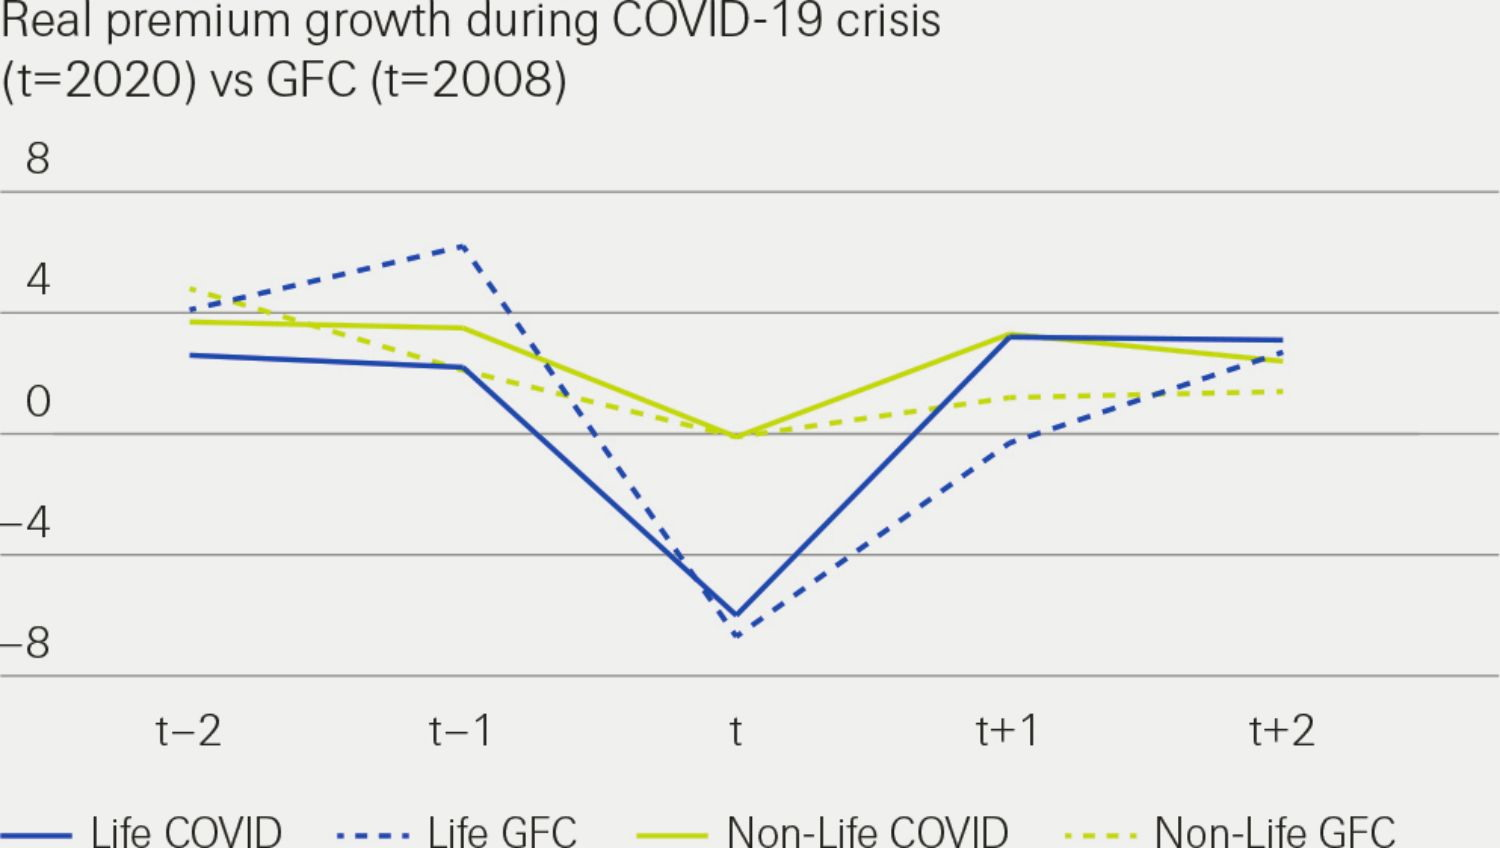 This infographic shows real premium growth during COVID-19 crisis. sigma 4/2020